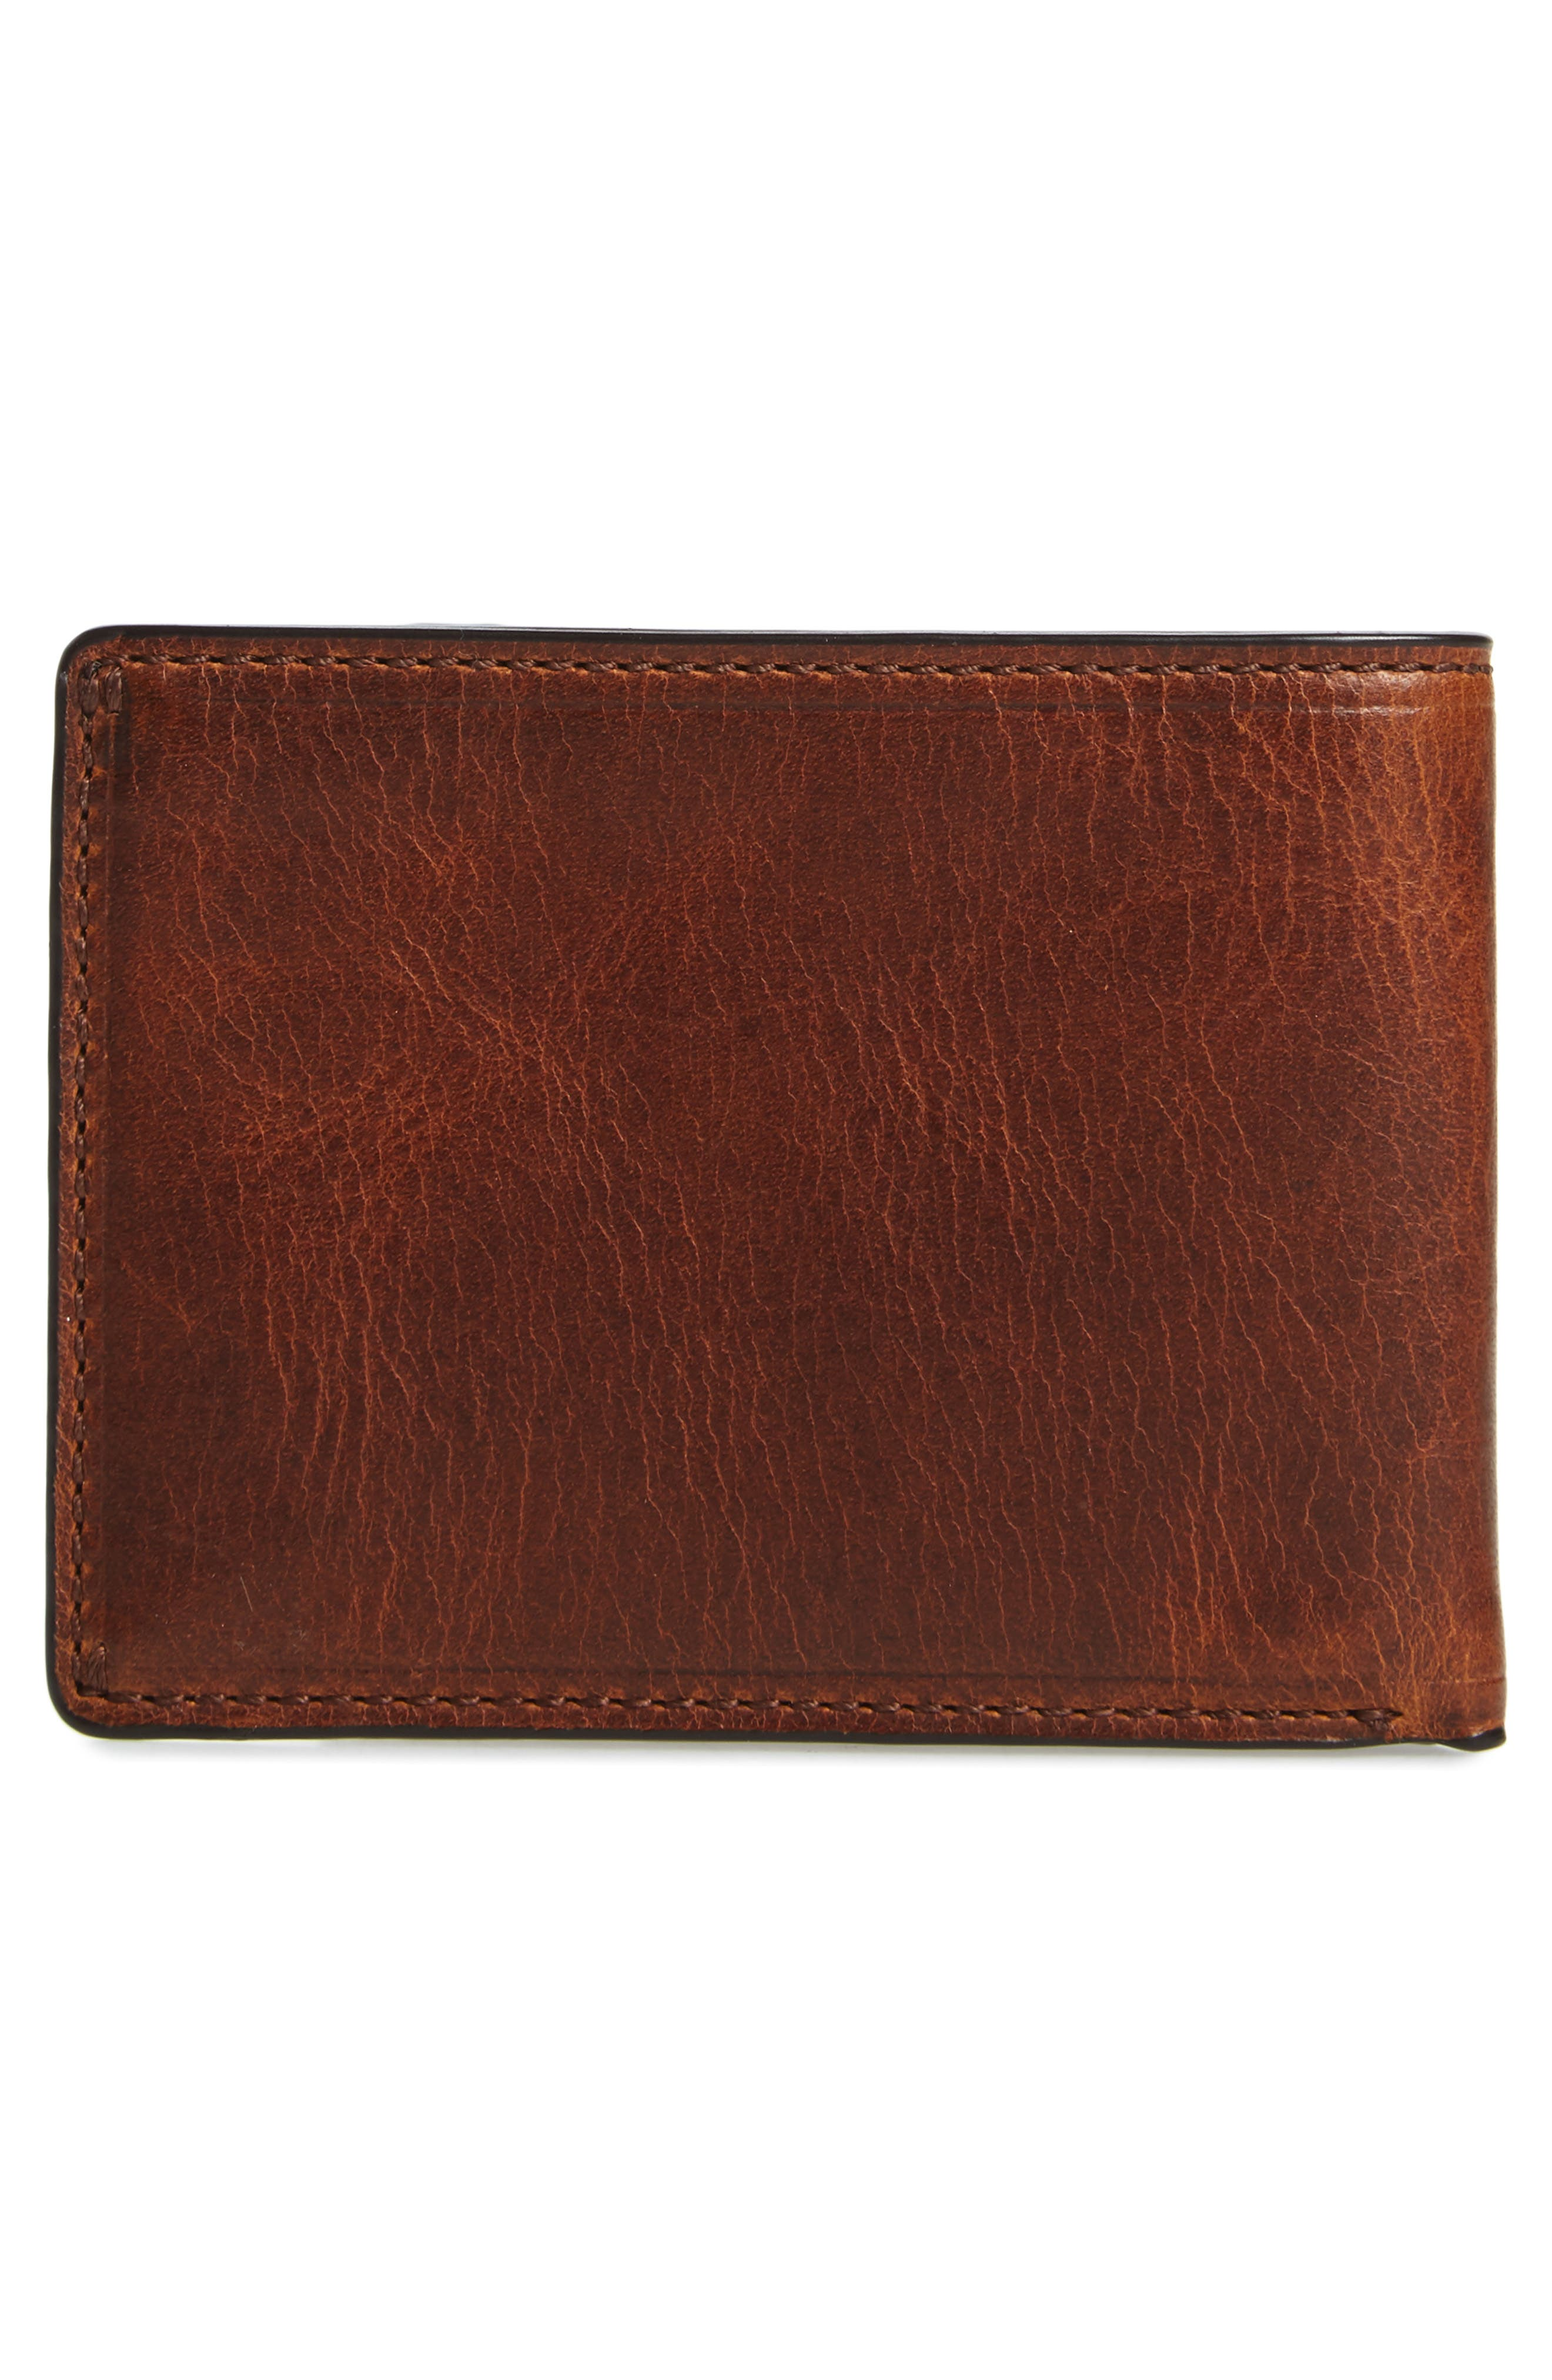 FRYE, Logan Leather Wallet, Alternate thumbnail 3, color, COGNAC